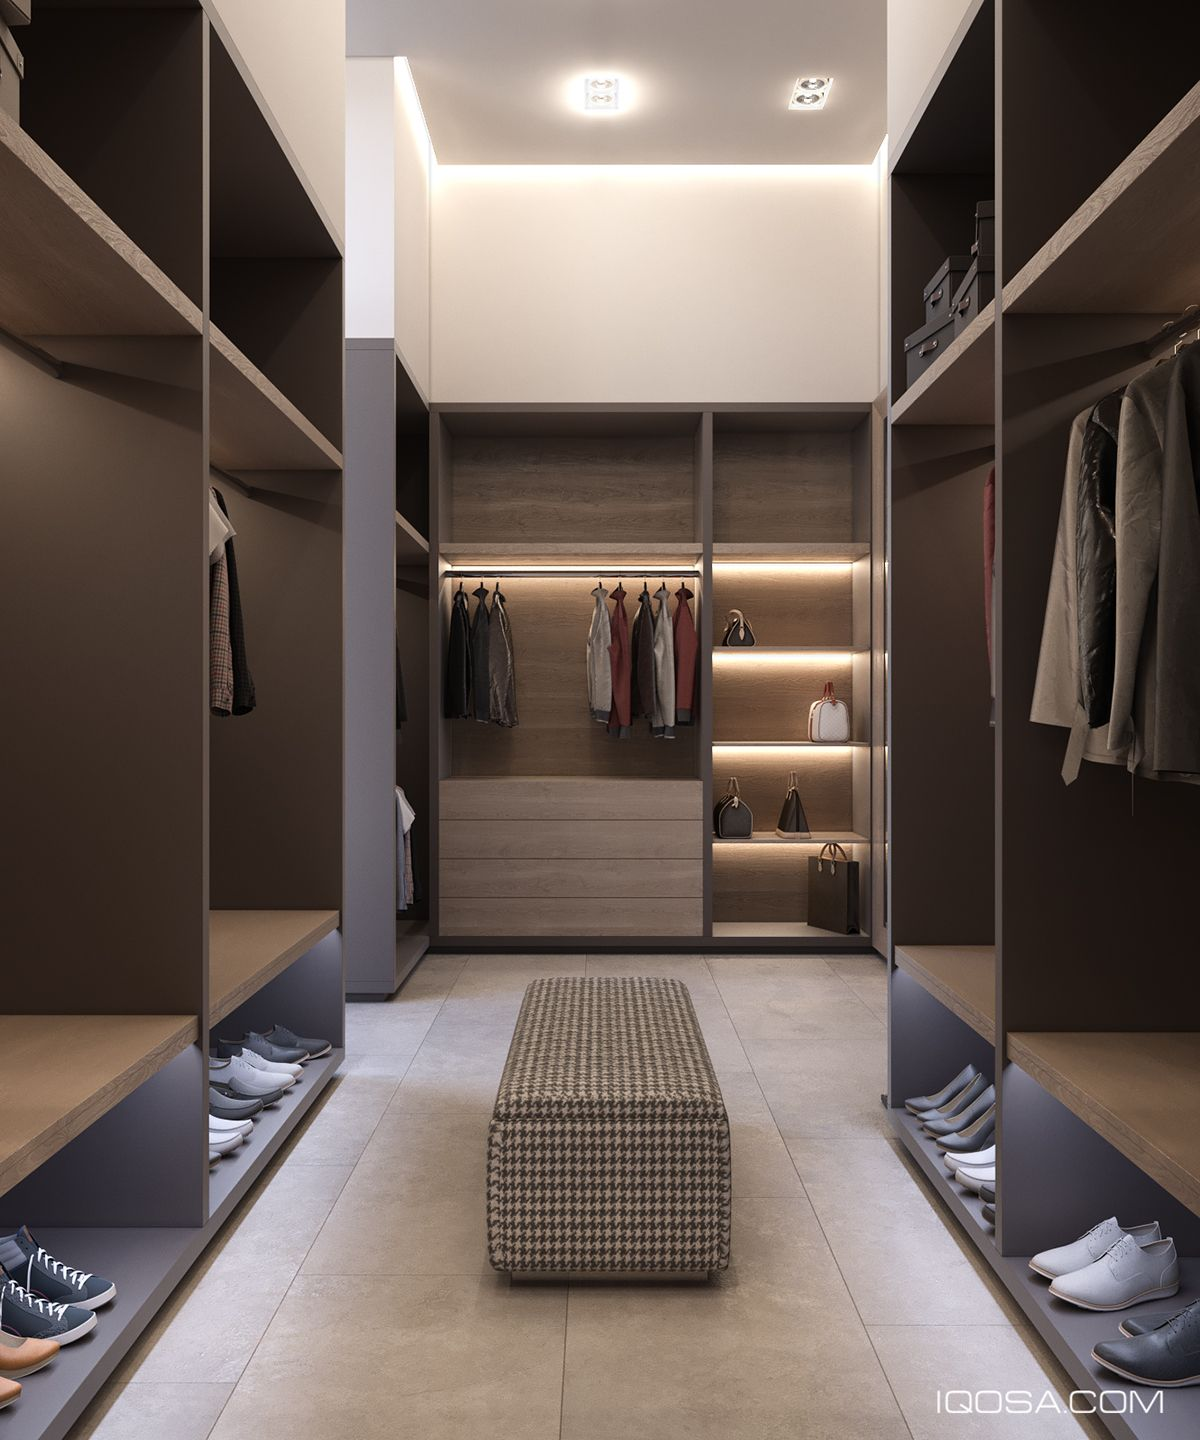 Merveilleux Walk In Closet Ideas, Walk In Closet Design, Walk In Closet Dimensions, Walk  In Closet Systems, Small Walk In Closet Organization